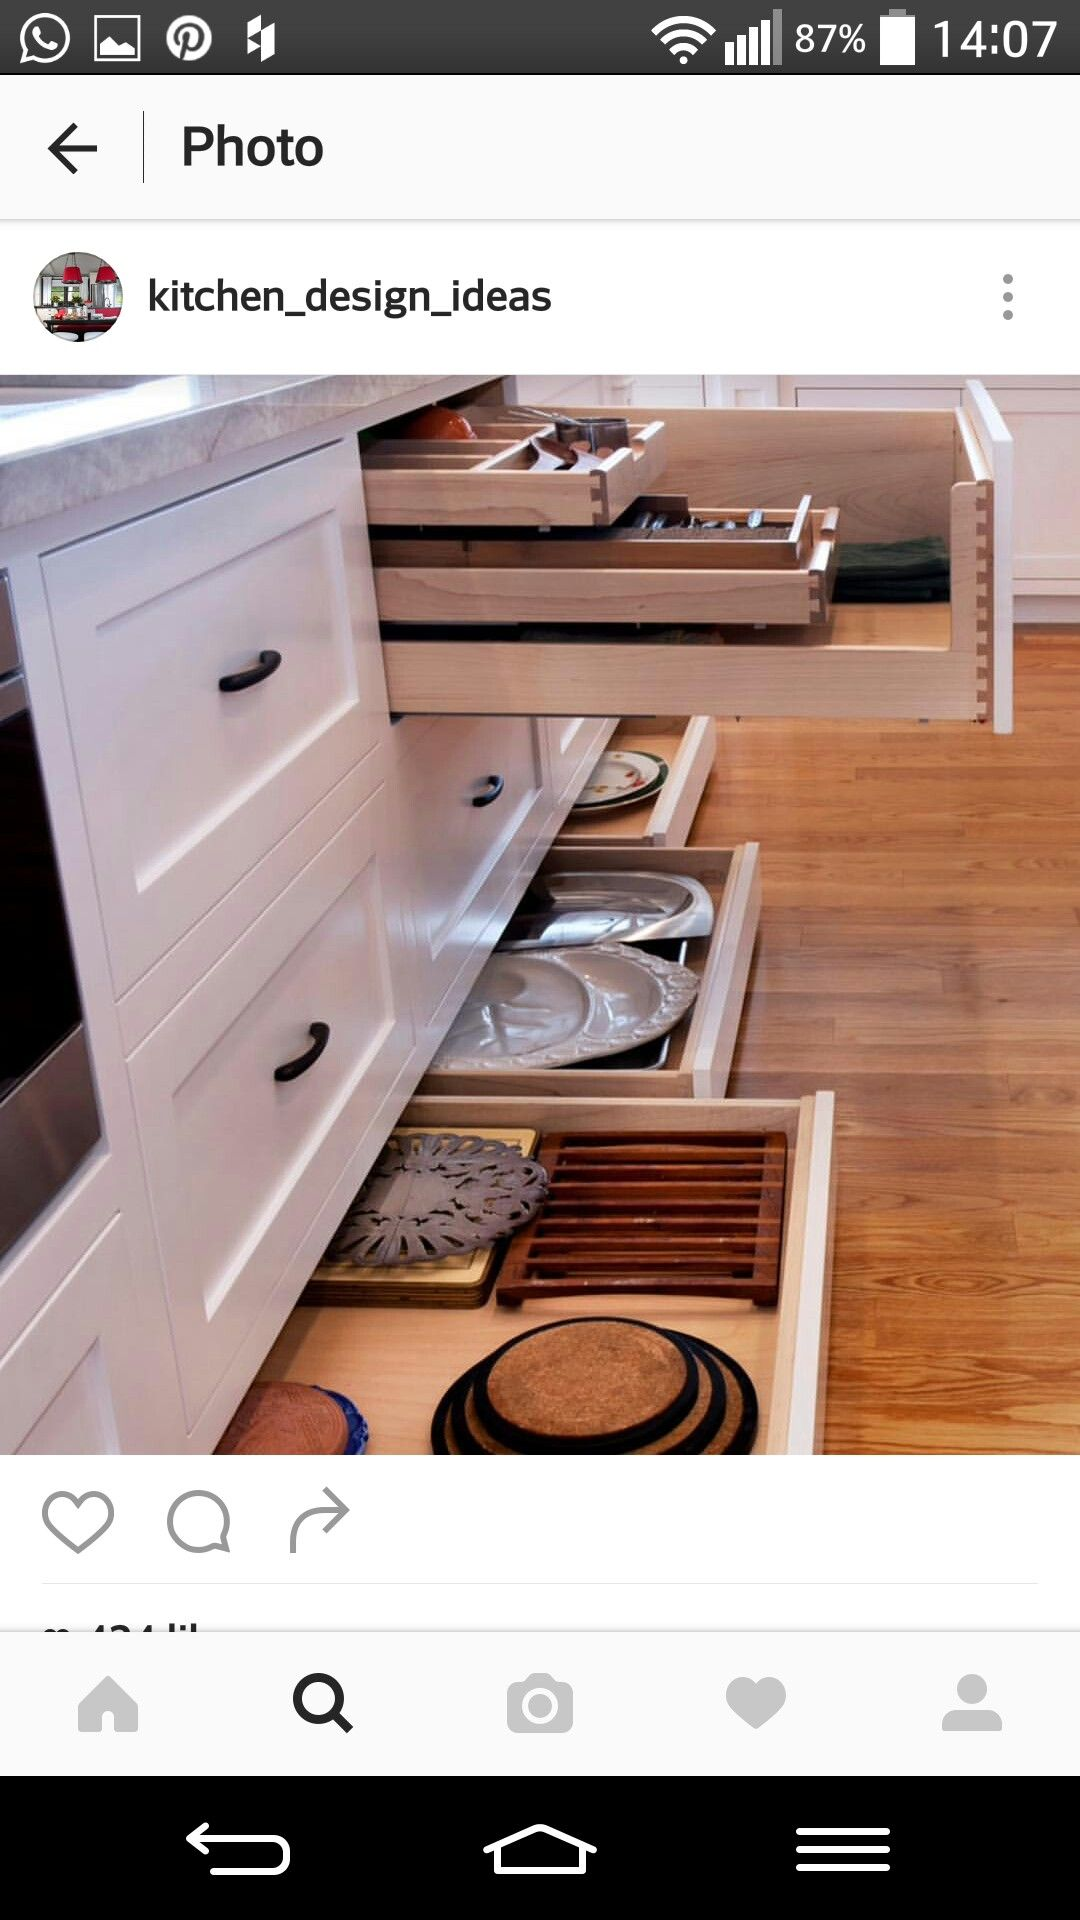 Clever Storage Ideas, Remodeling Ideas, Kitchen Remodeling, Design Ideas, Kitchen  Designs, Iran, Persian, Persian People, Persian Cats